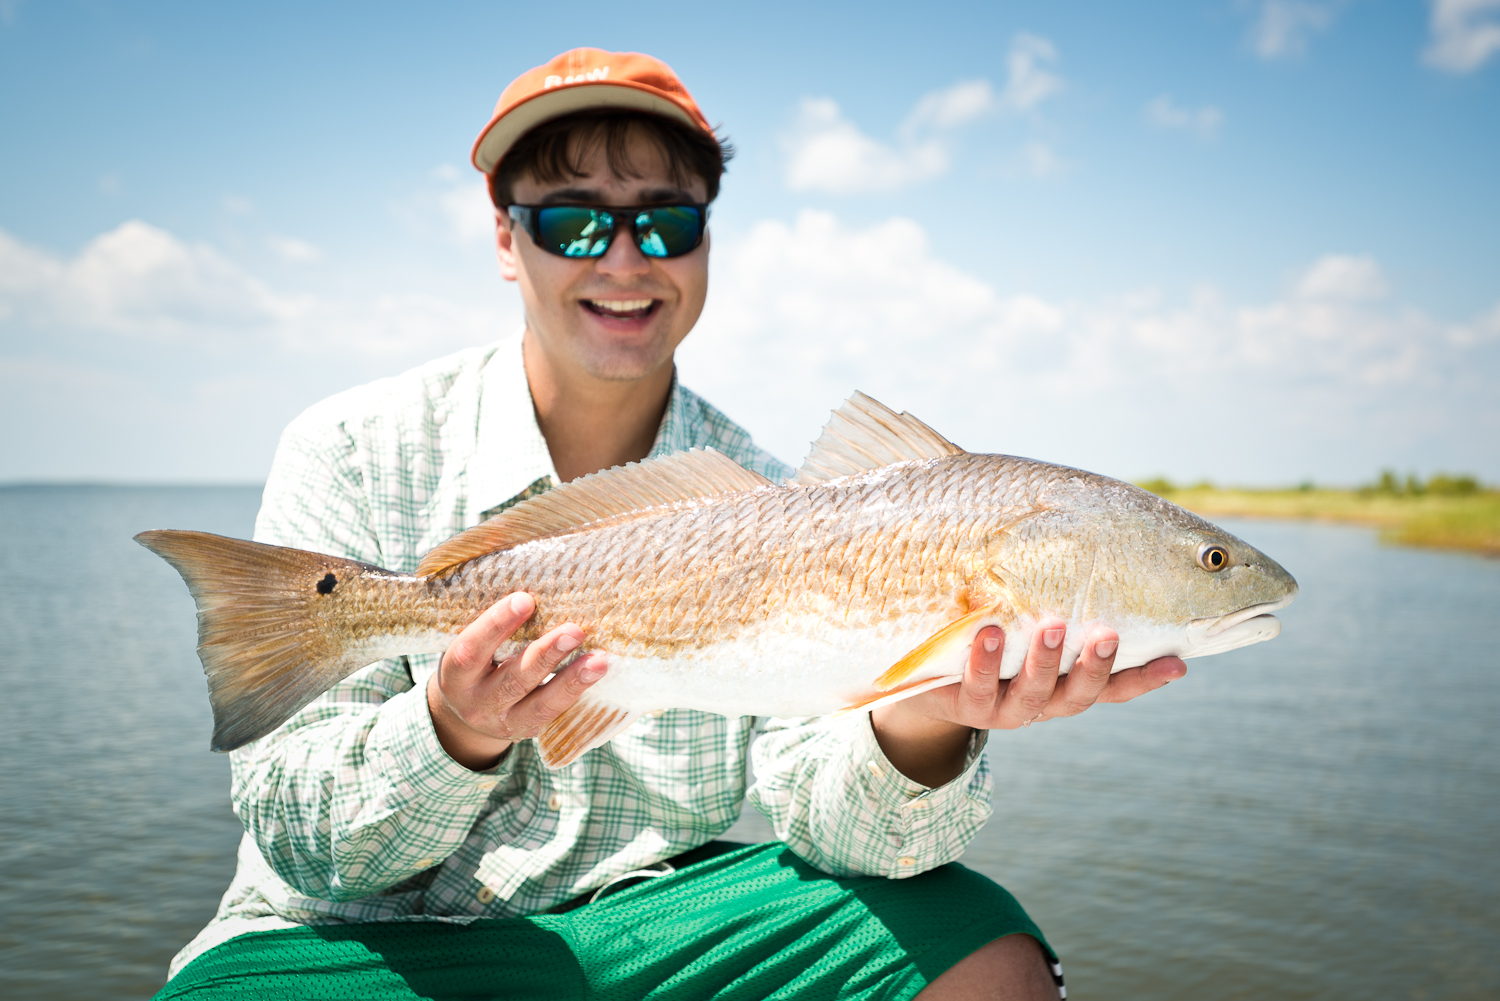 Fly Fishing Photos from August 2015 wit Captain Brandon Keck Of Southern Fly Expeditions